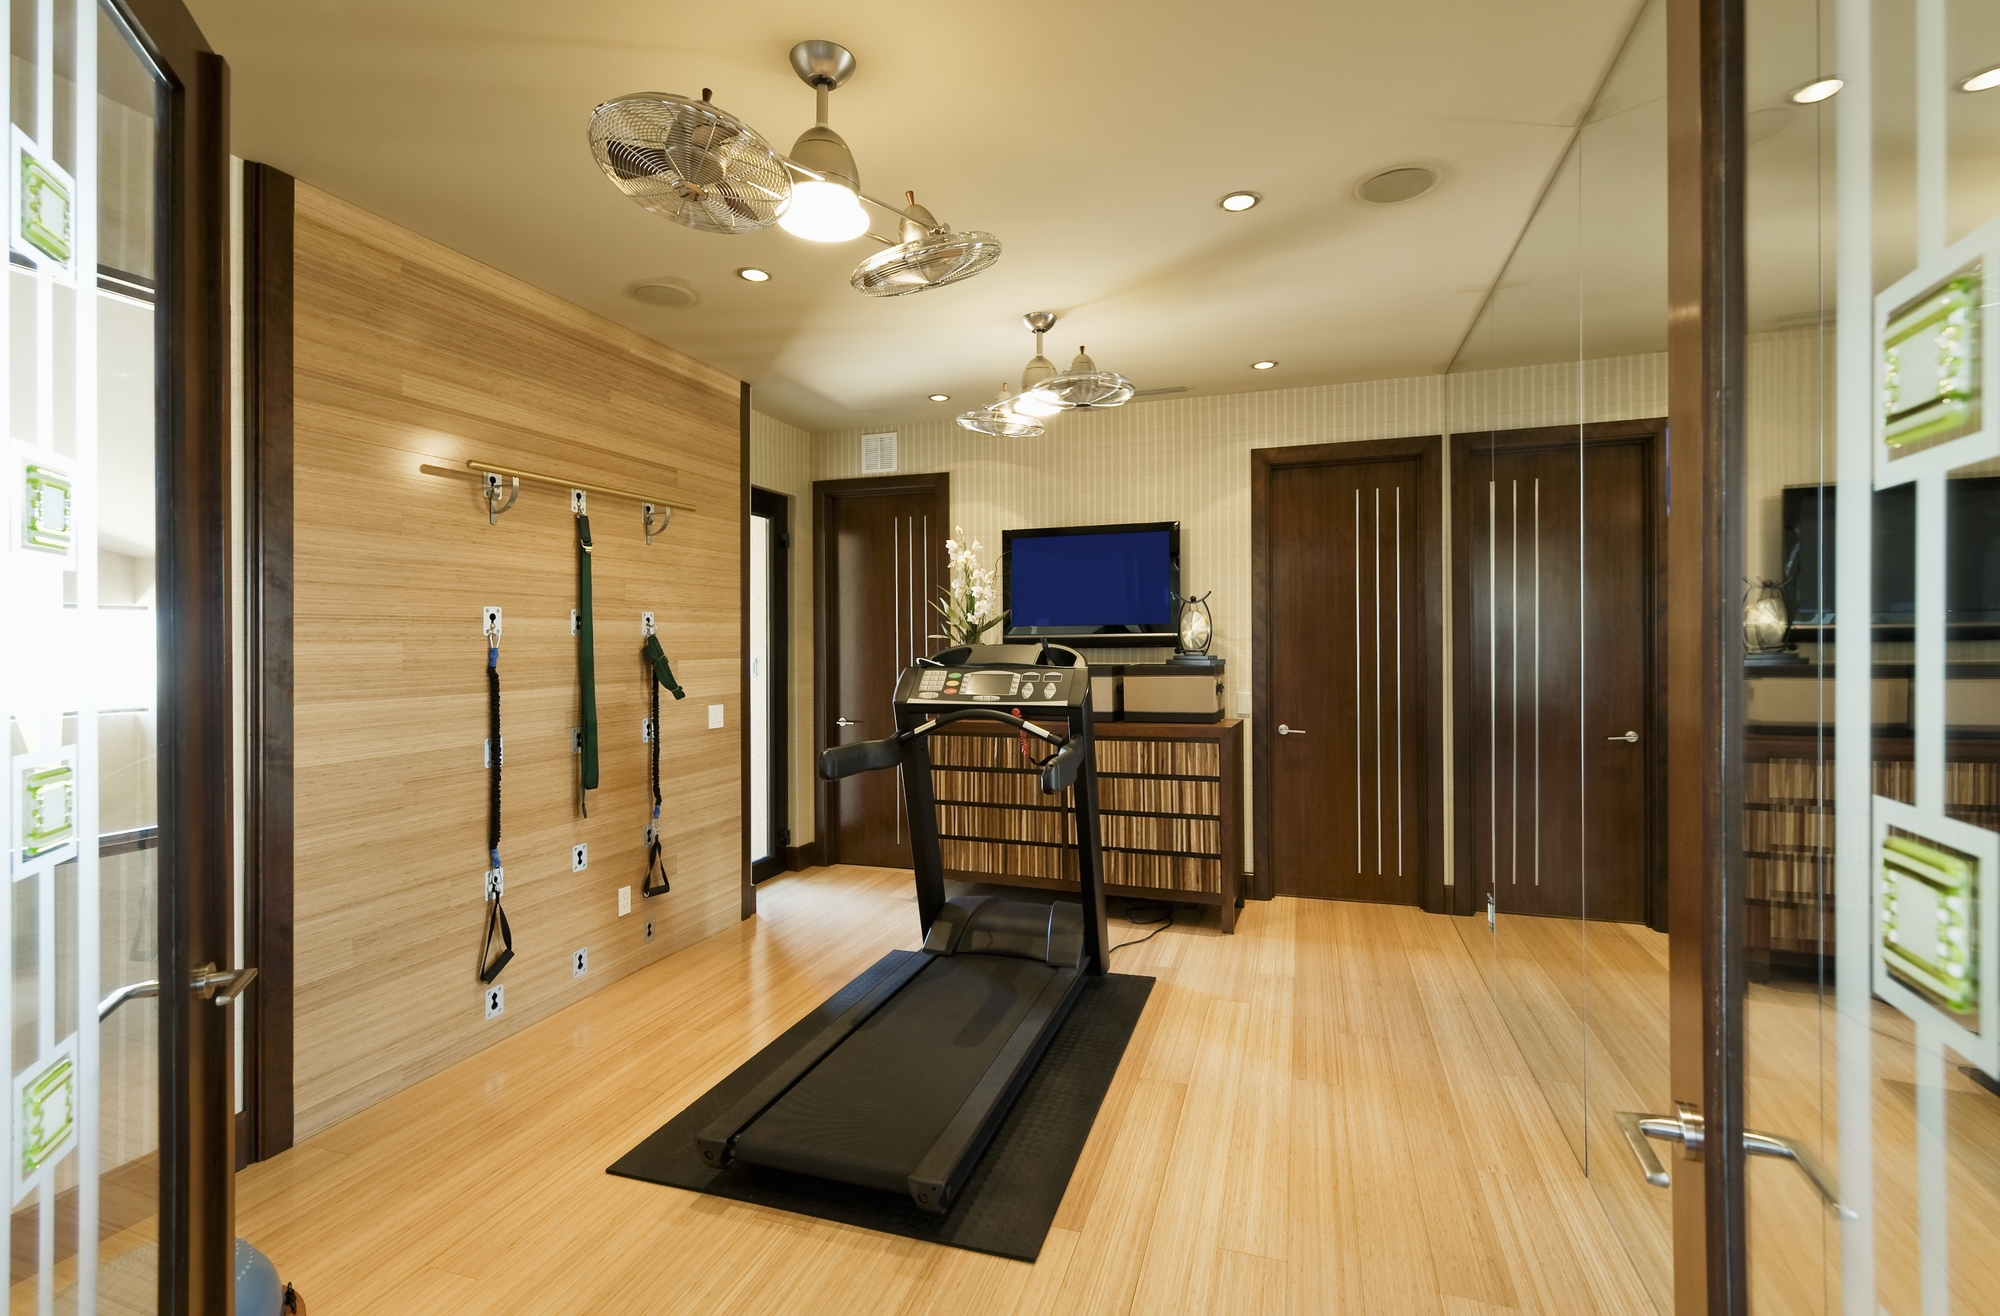 home gym design. Snug Harbor A huge mirror  soft gray walls carpet and recessed lighting create a cozy place to get in shape while mounted TV modern 10 Amazing Home Gym Designs Daily Dream Decor